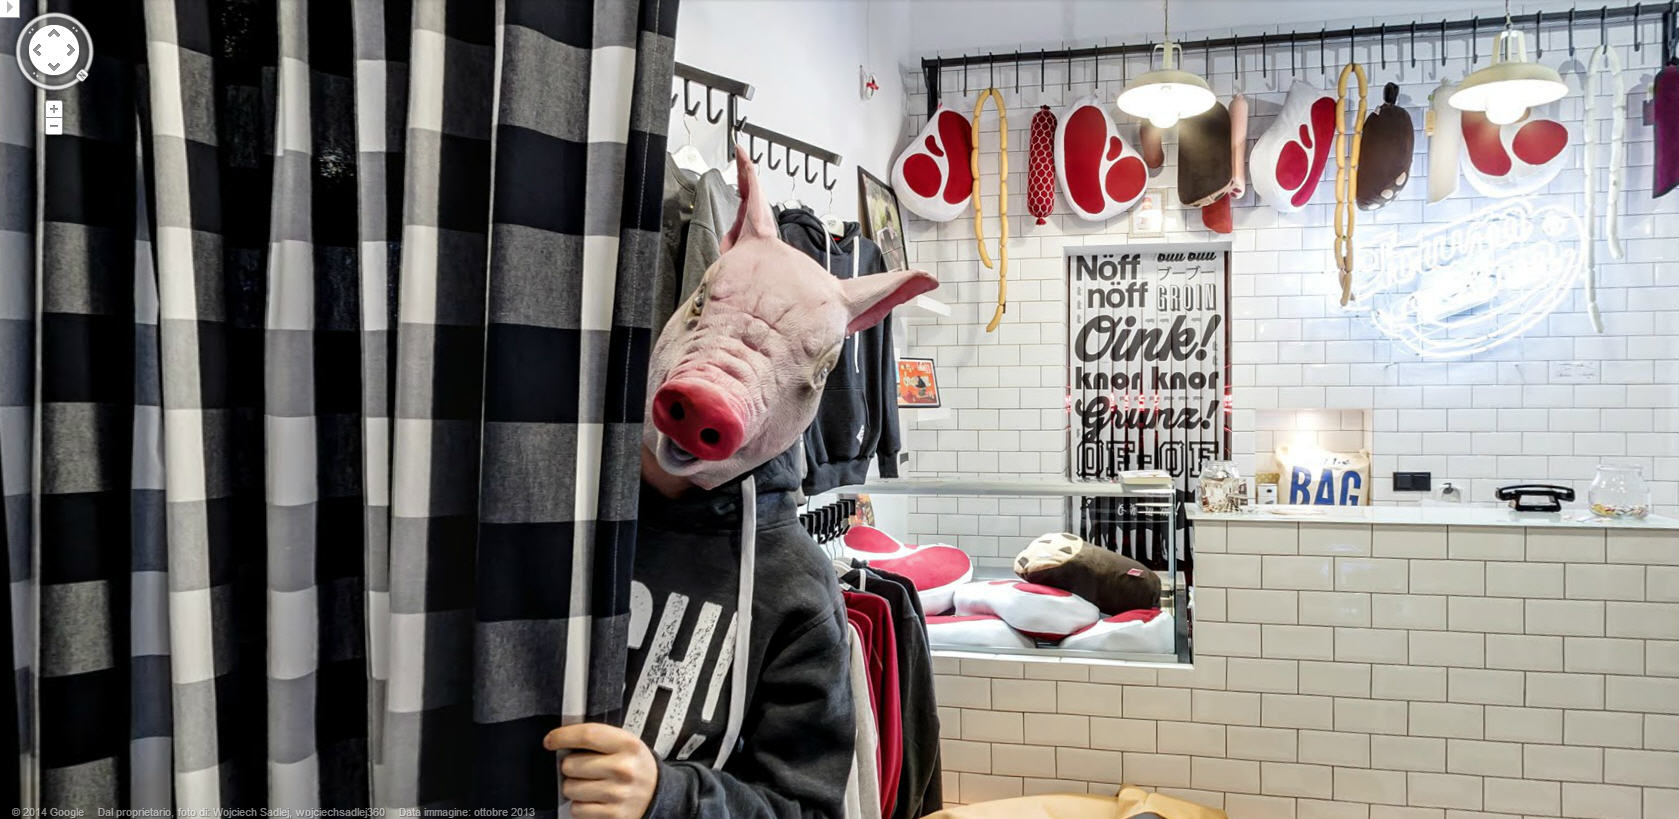 Pig Boy – Perhaps a new Google Street View trend?